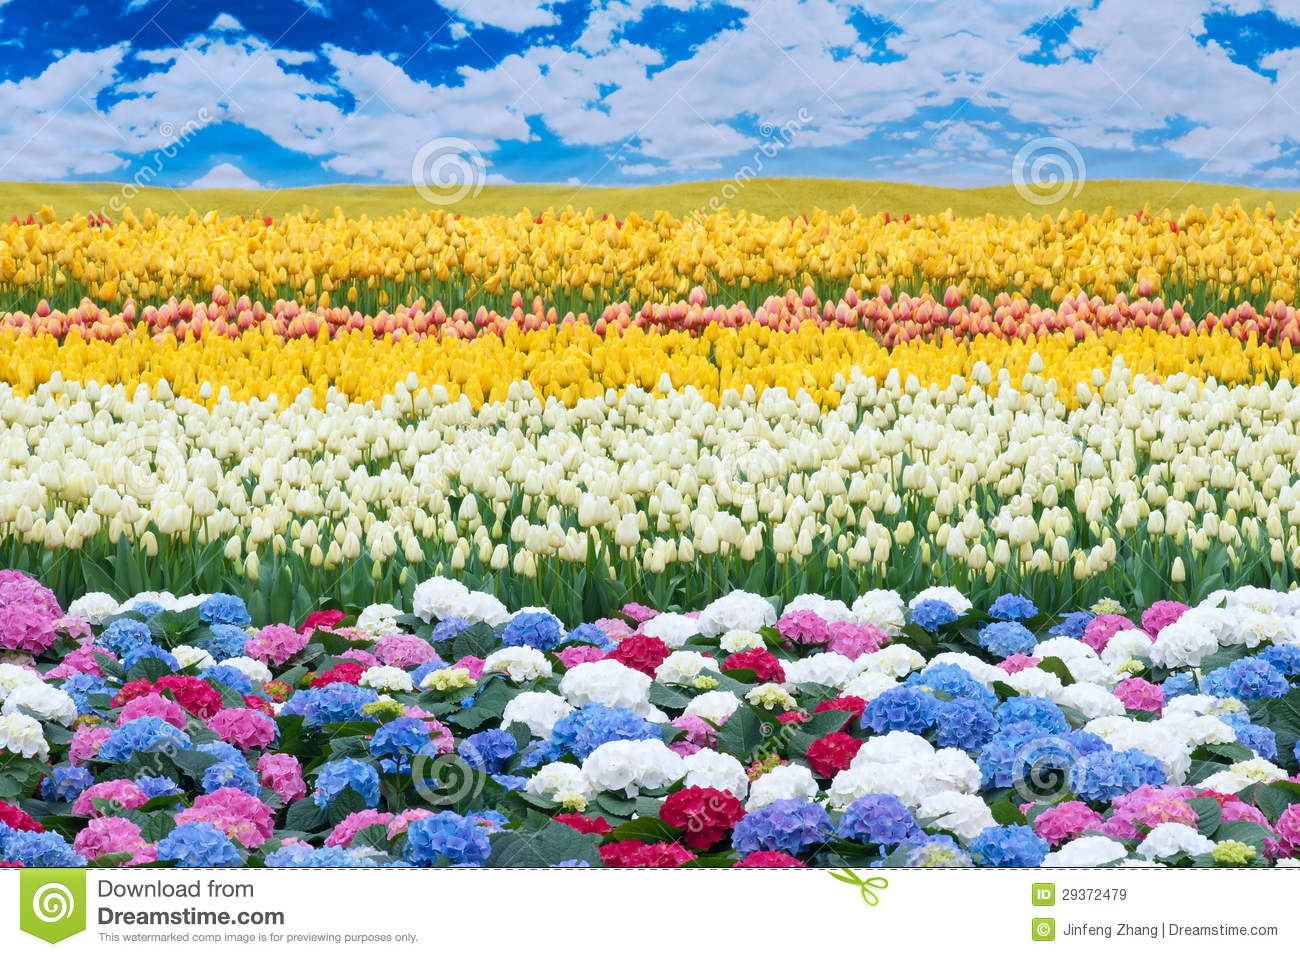 flower scenery stock image image of colour fowers white 29372479